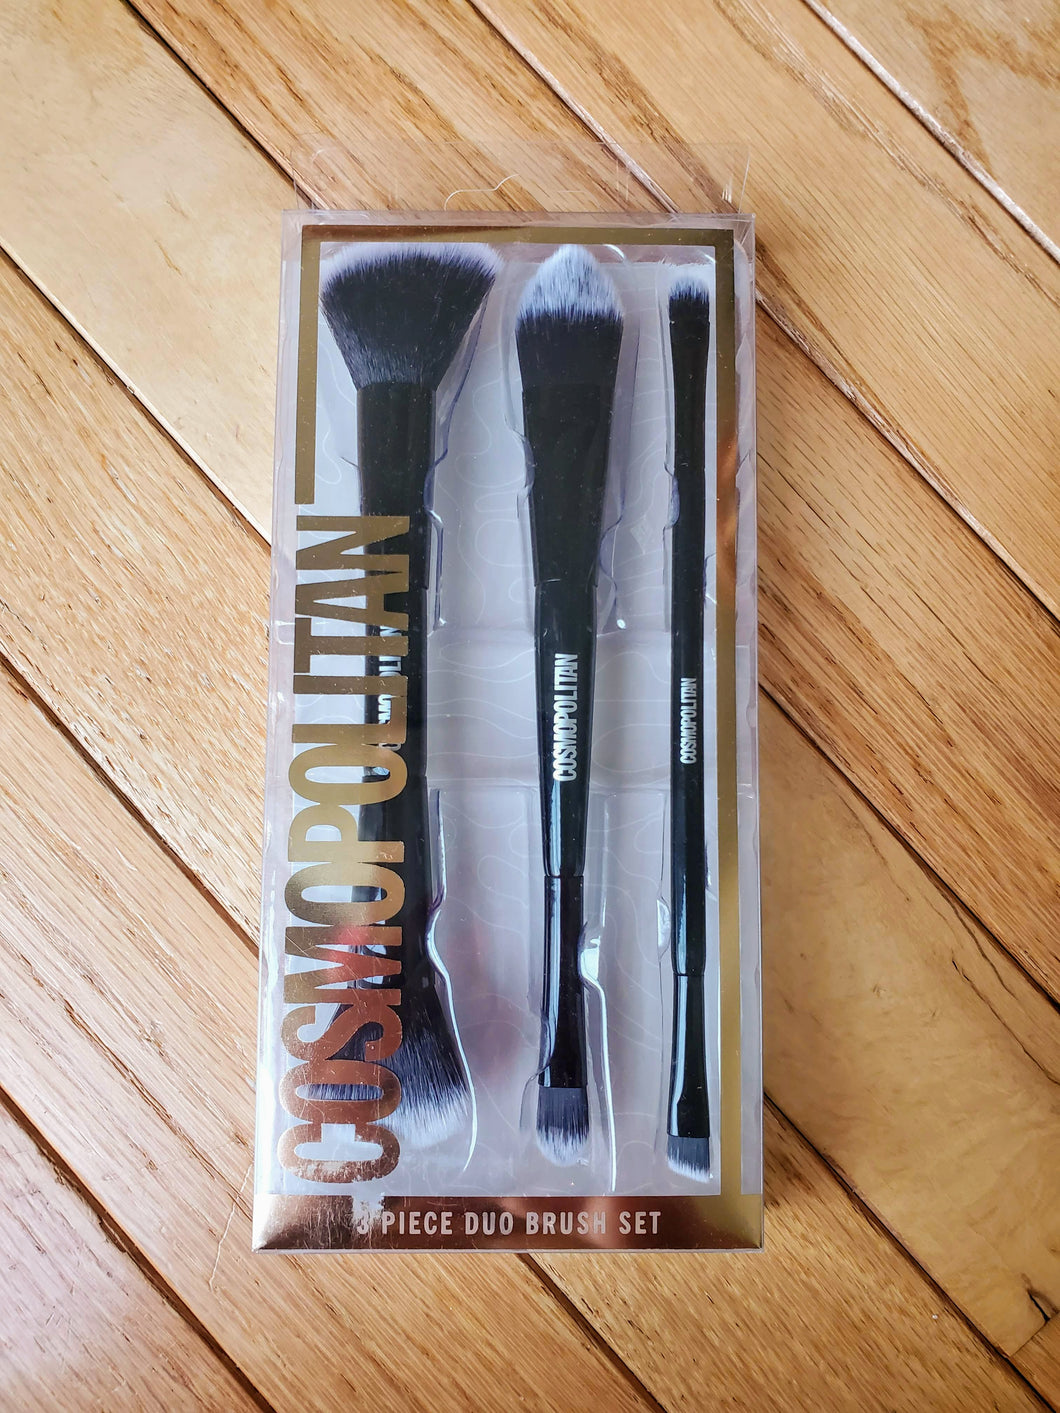 3 Piece Duo Brush Set